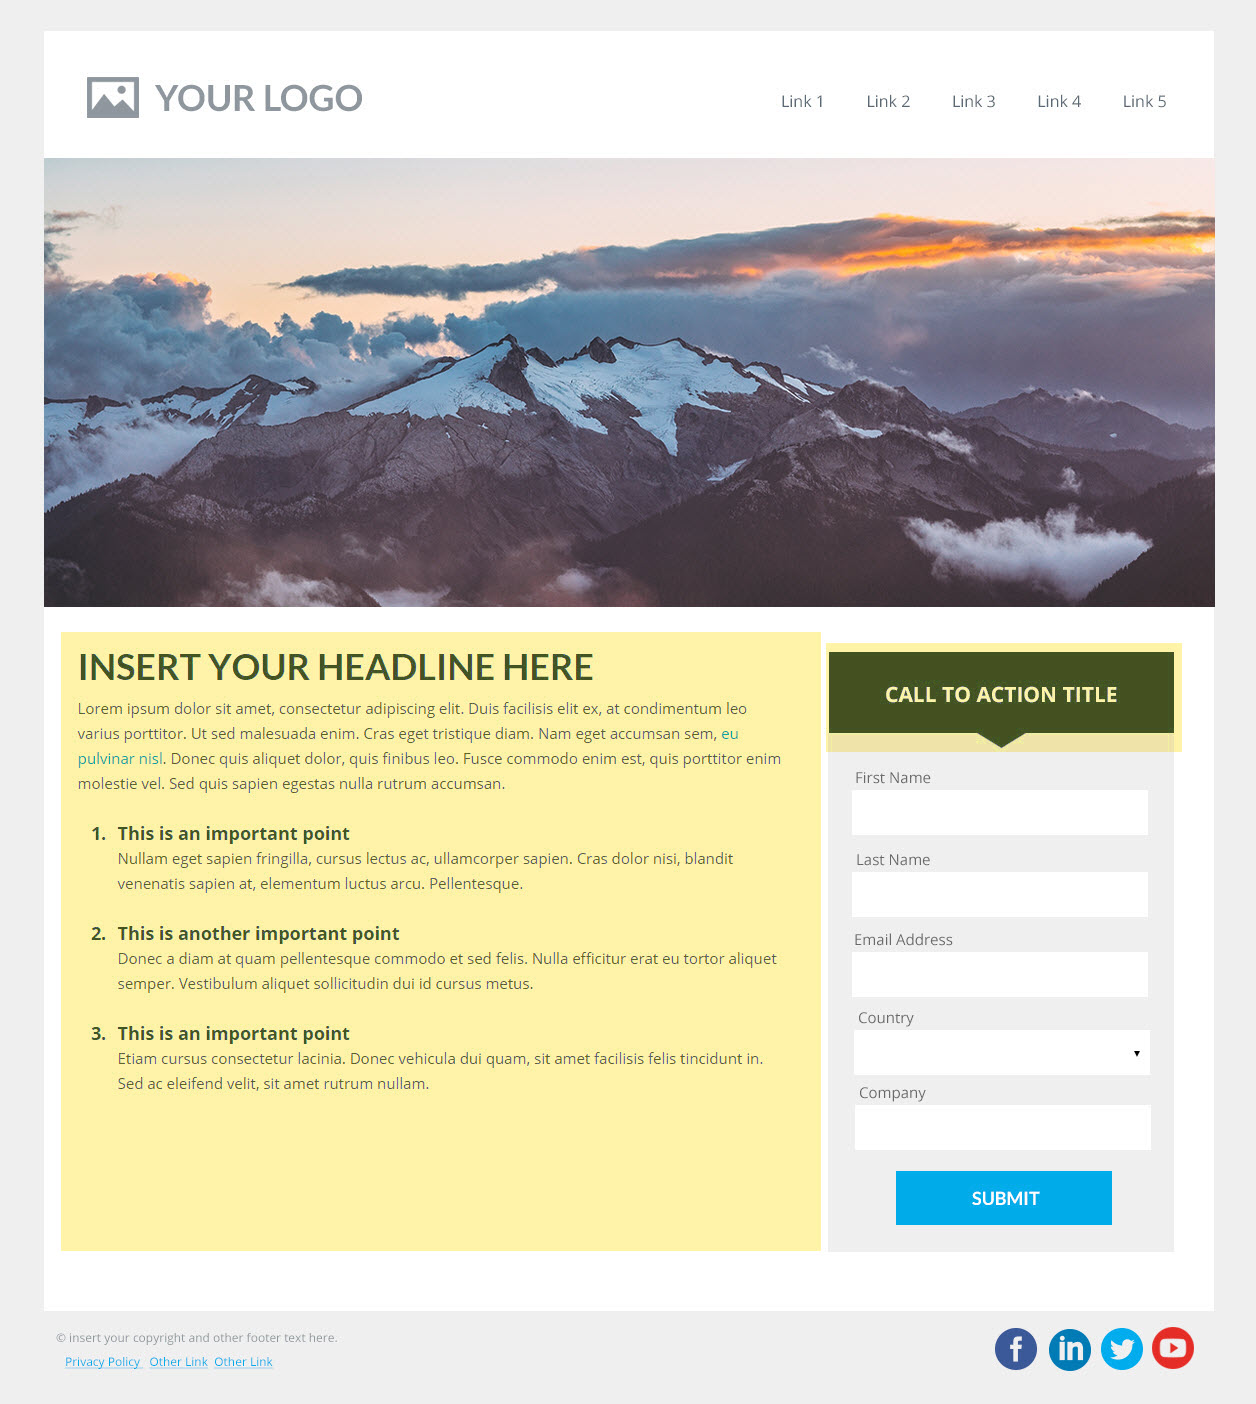 pardot_landing_page_example_screenshot_editable